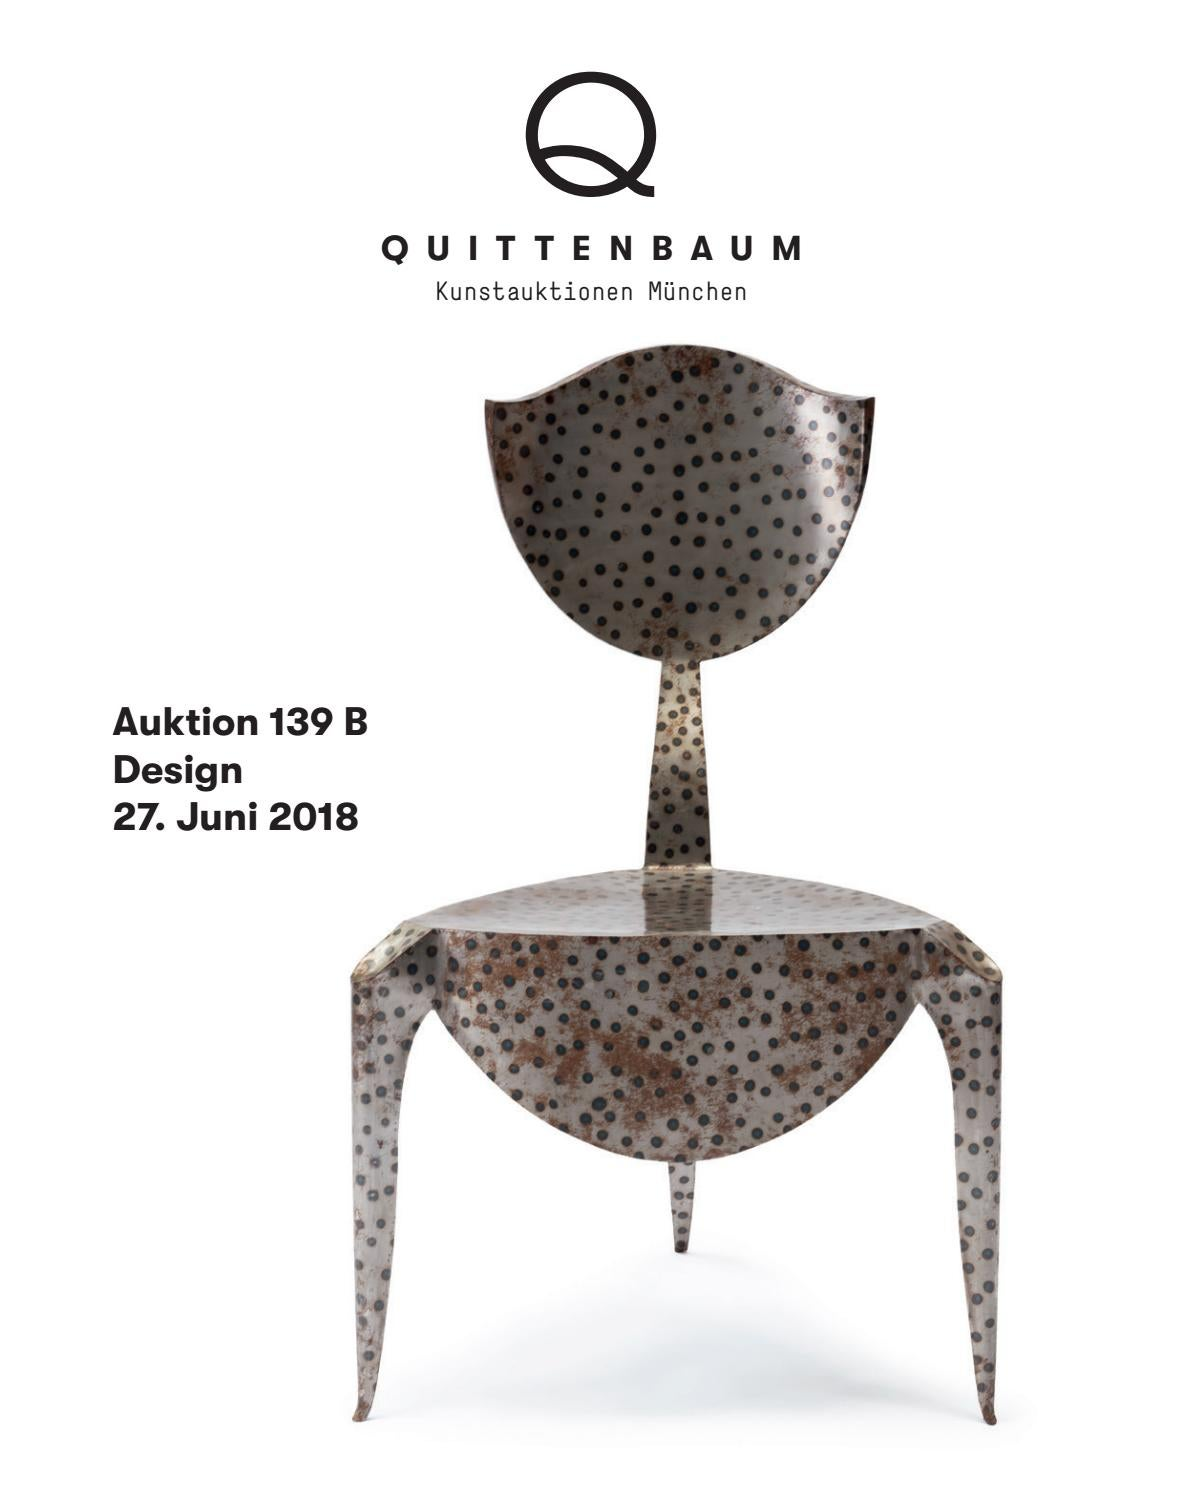 Ikea Stoelen Kunststof Auction 139 B Design Quittenbaum Art Auctions By